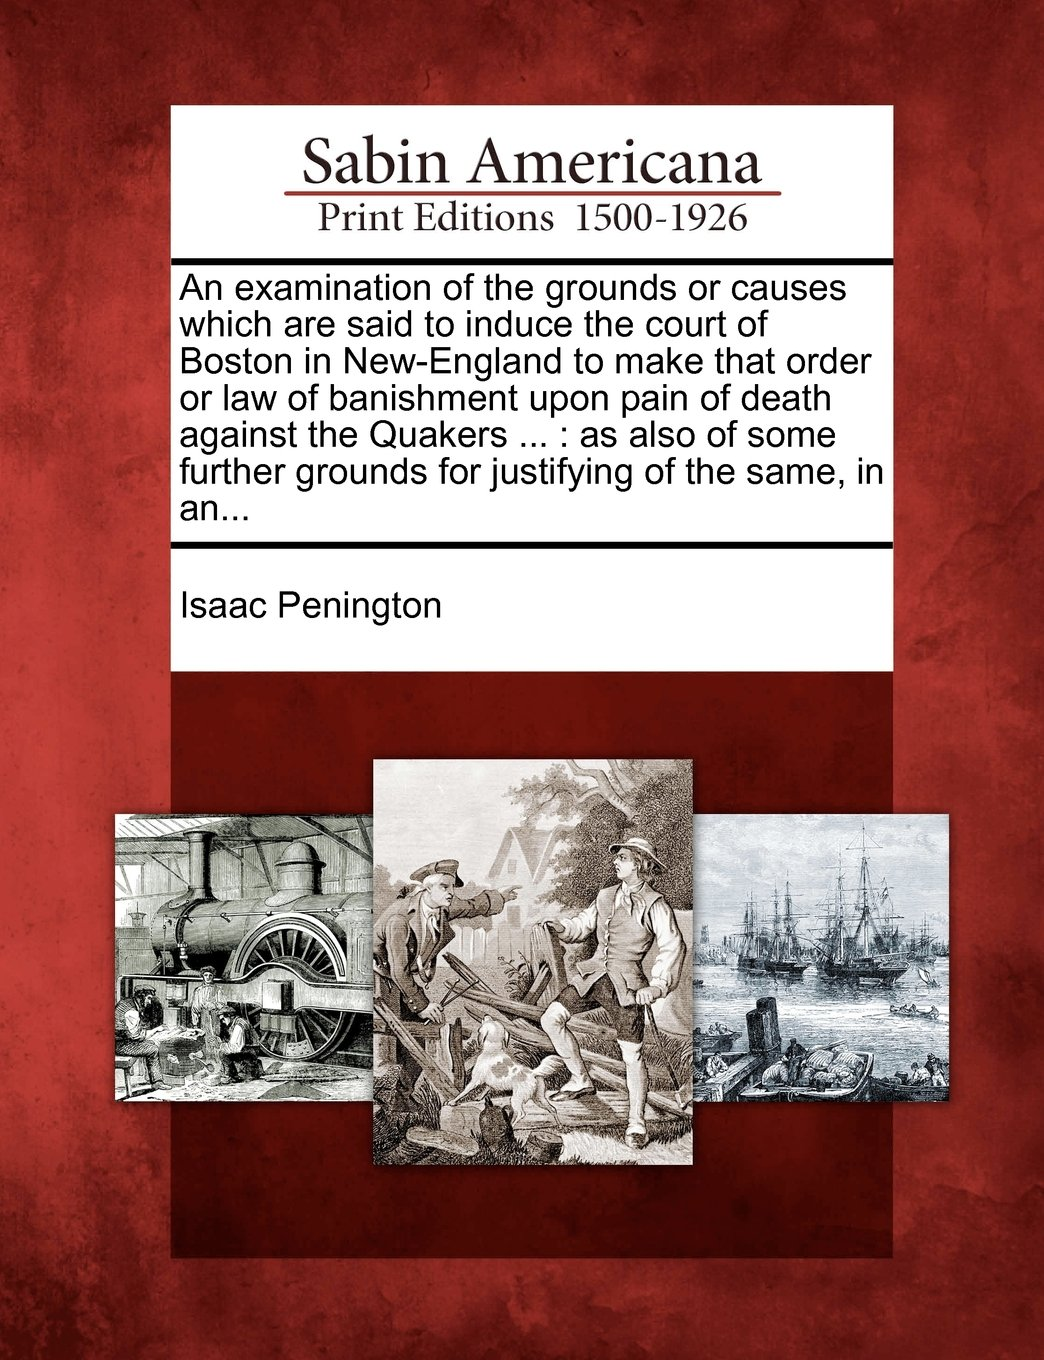 An examination of the grounds or causes which are said to induce the court of Boston in New-England to make that order or law of banishment upon pain ... grounds for justifying of the same, in an... ebook